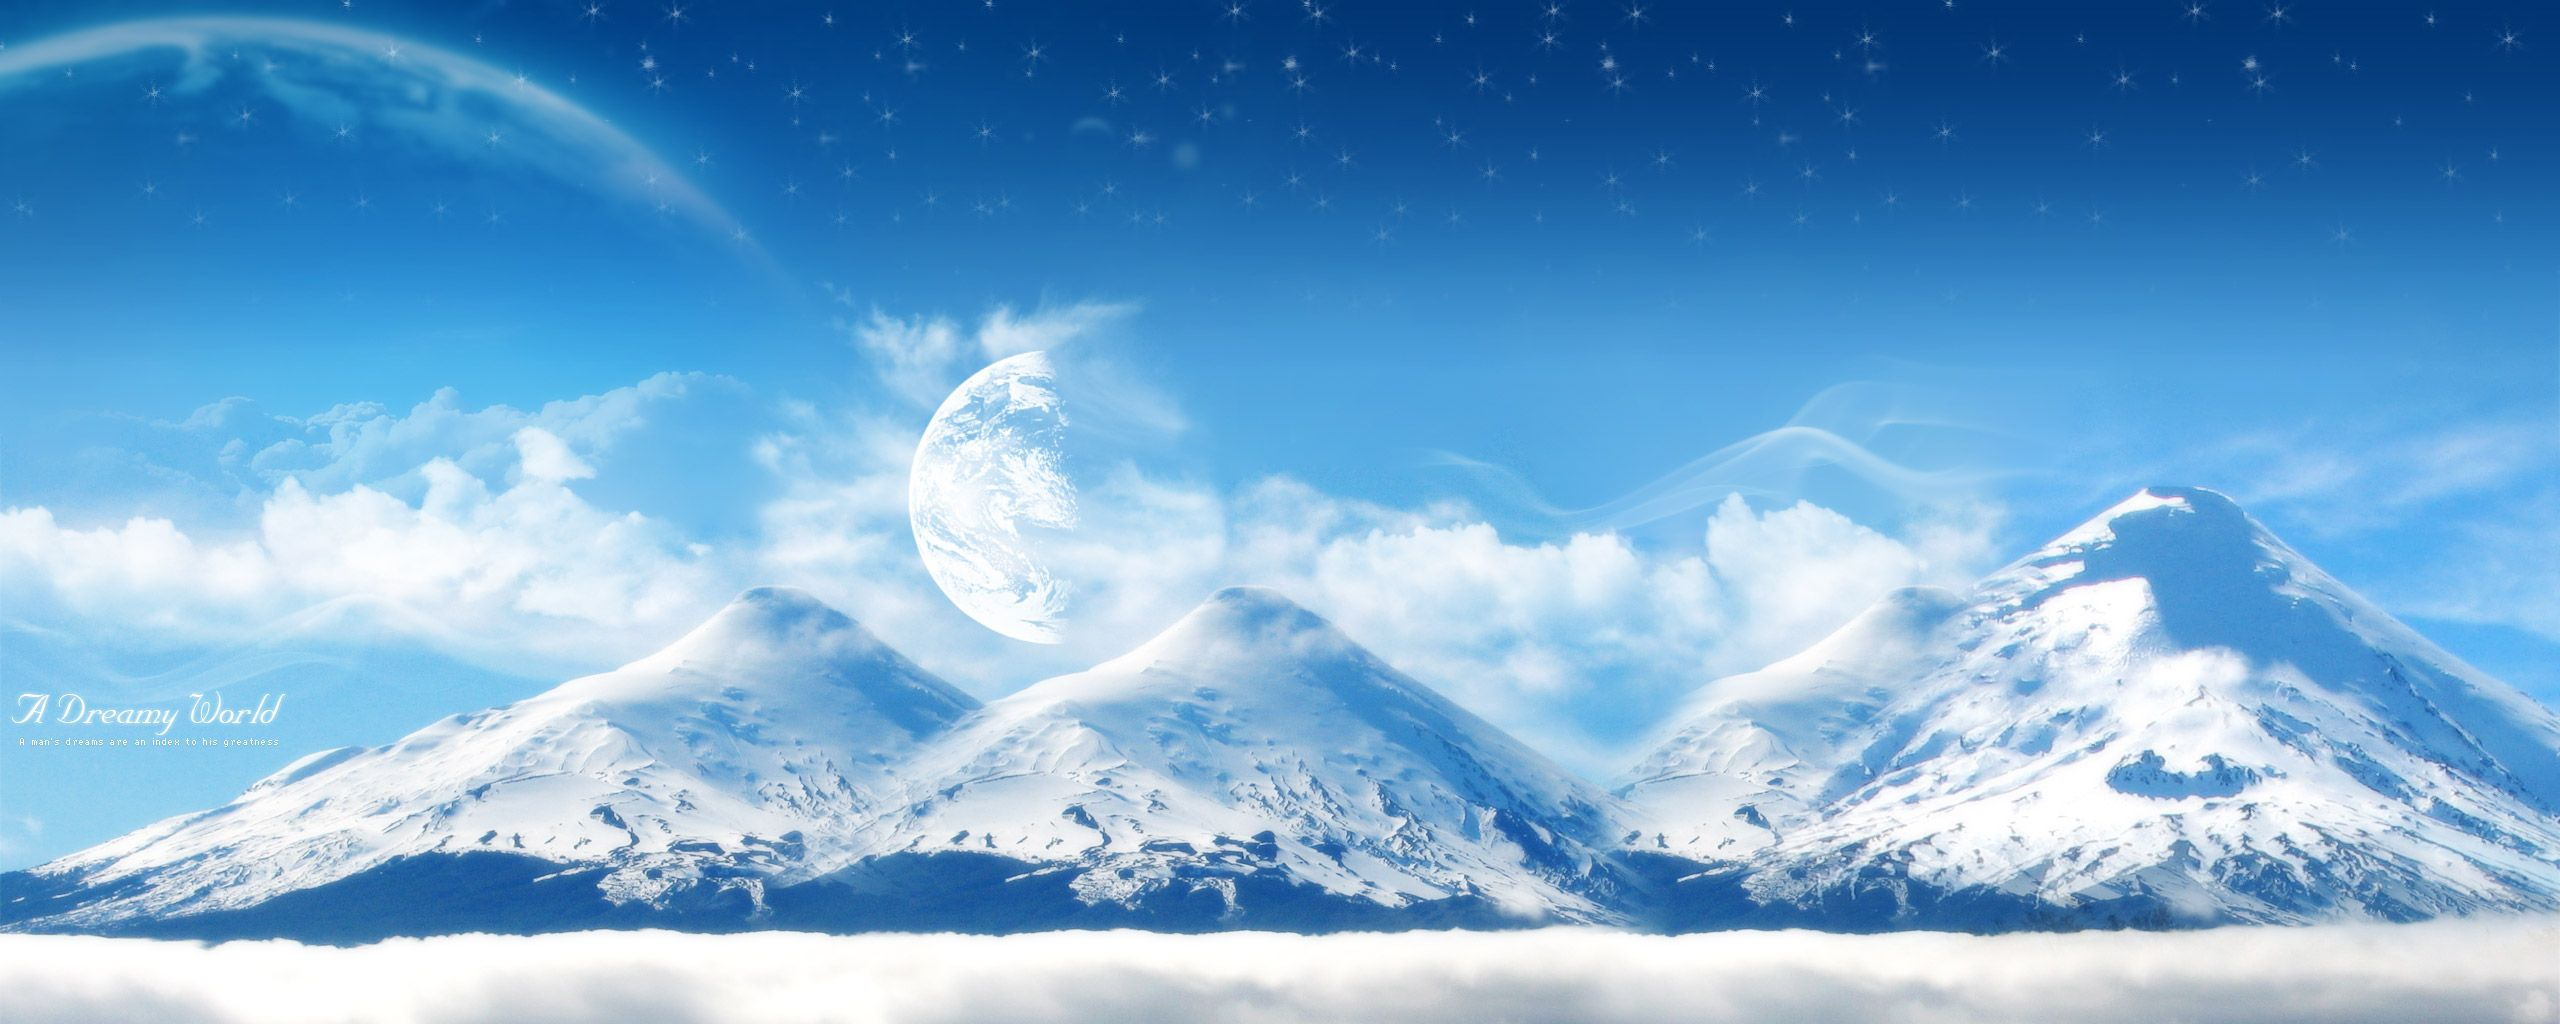 Dual-Screen-A-Dreamy-World-Snowy-Mountain-2560x1024